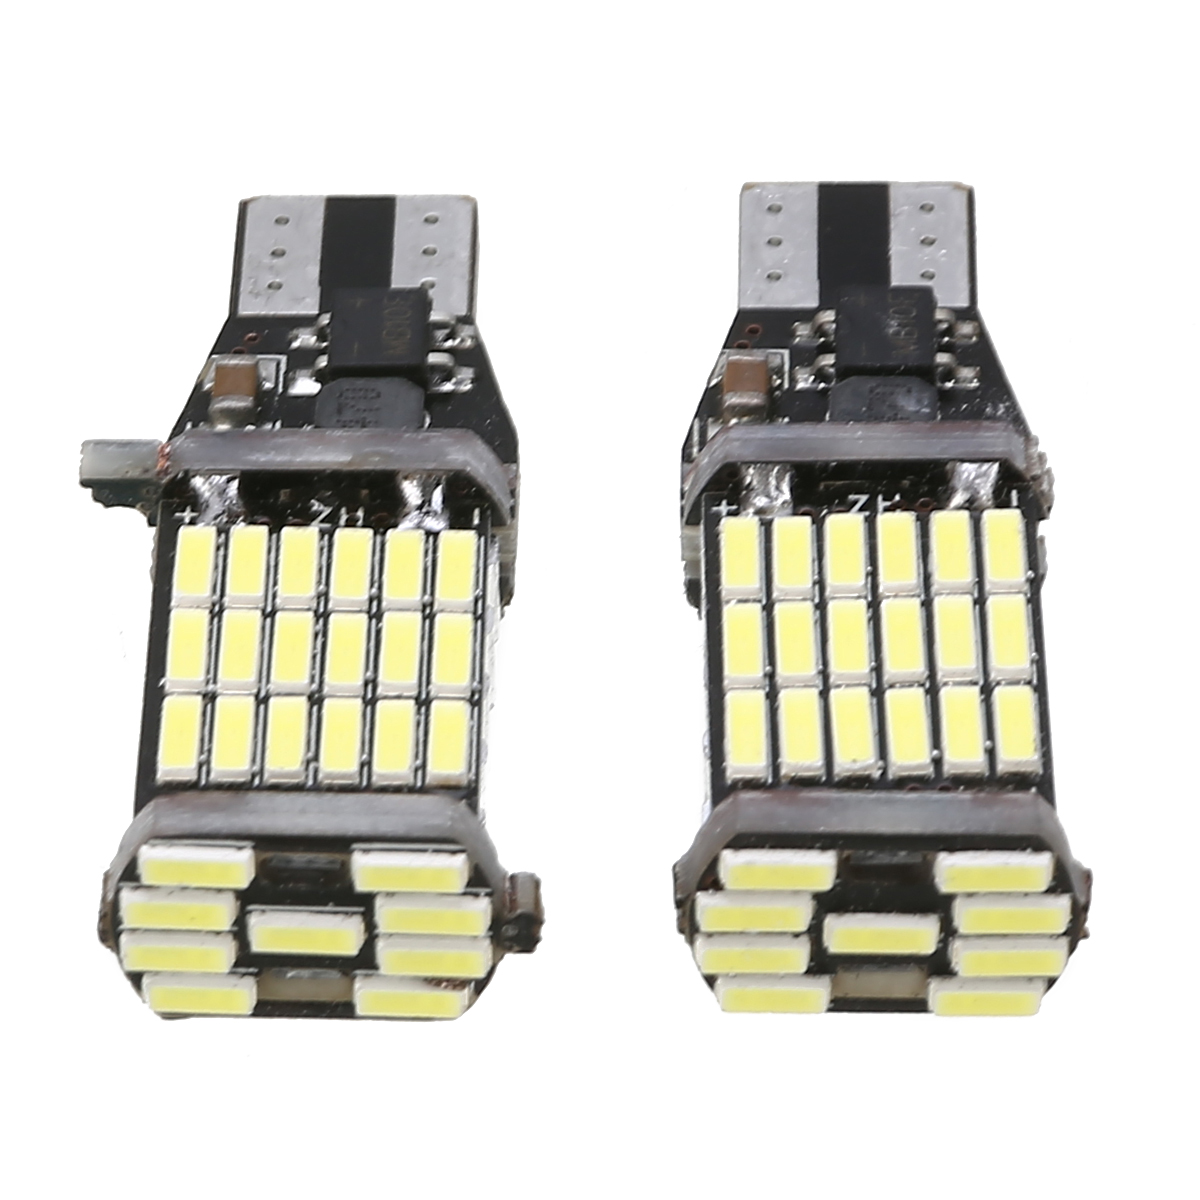 Car Signal Lamp 2pcs T10 T15 Super Bright Xenon White Bulb 921 912 4014 W16W 45SMD LED Canbus Width Backup Reverse Lights